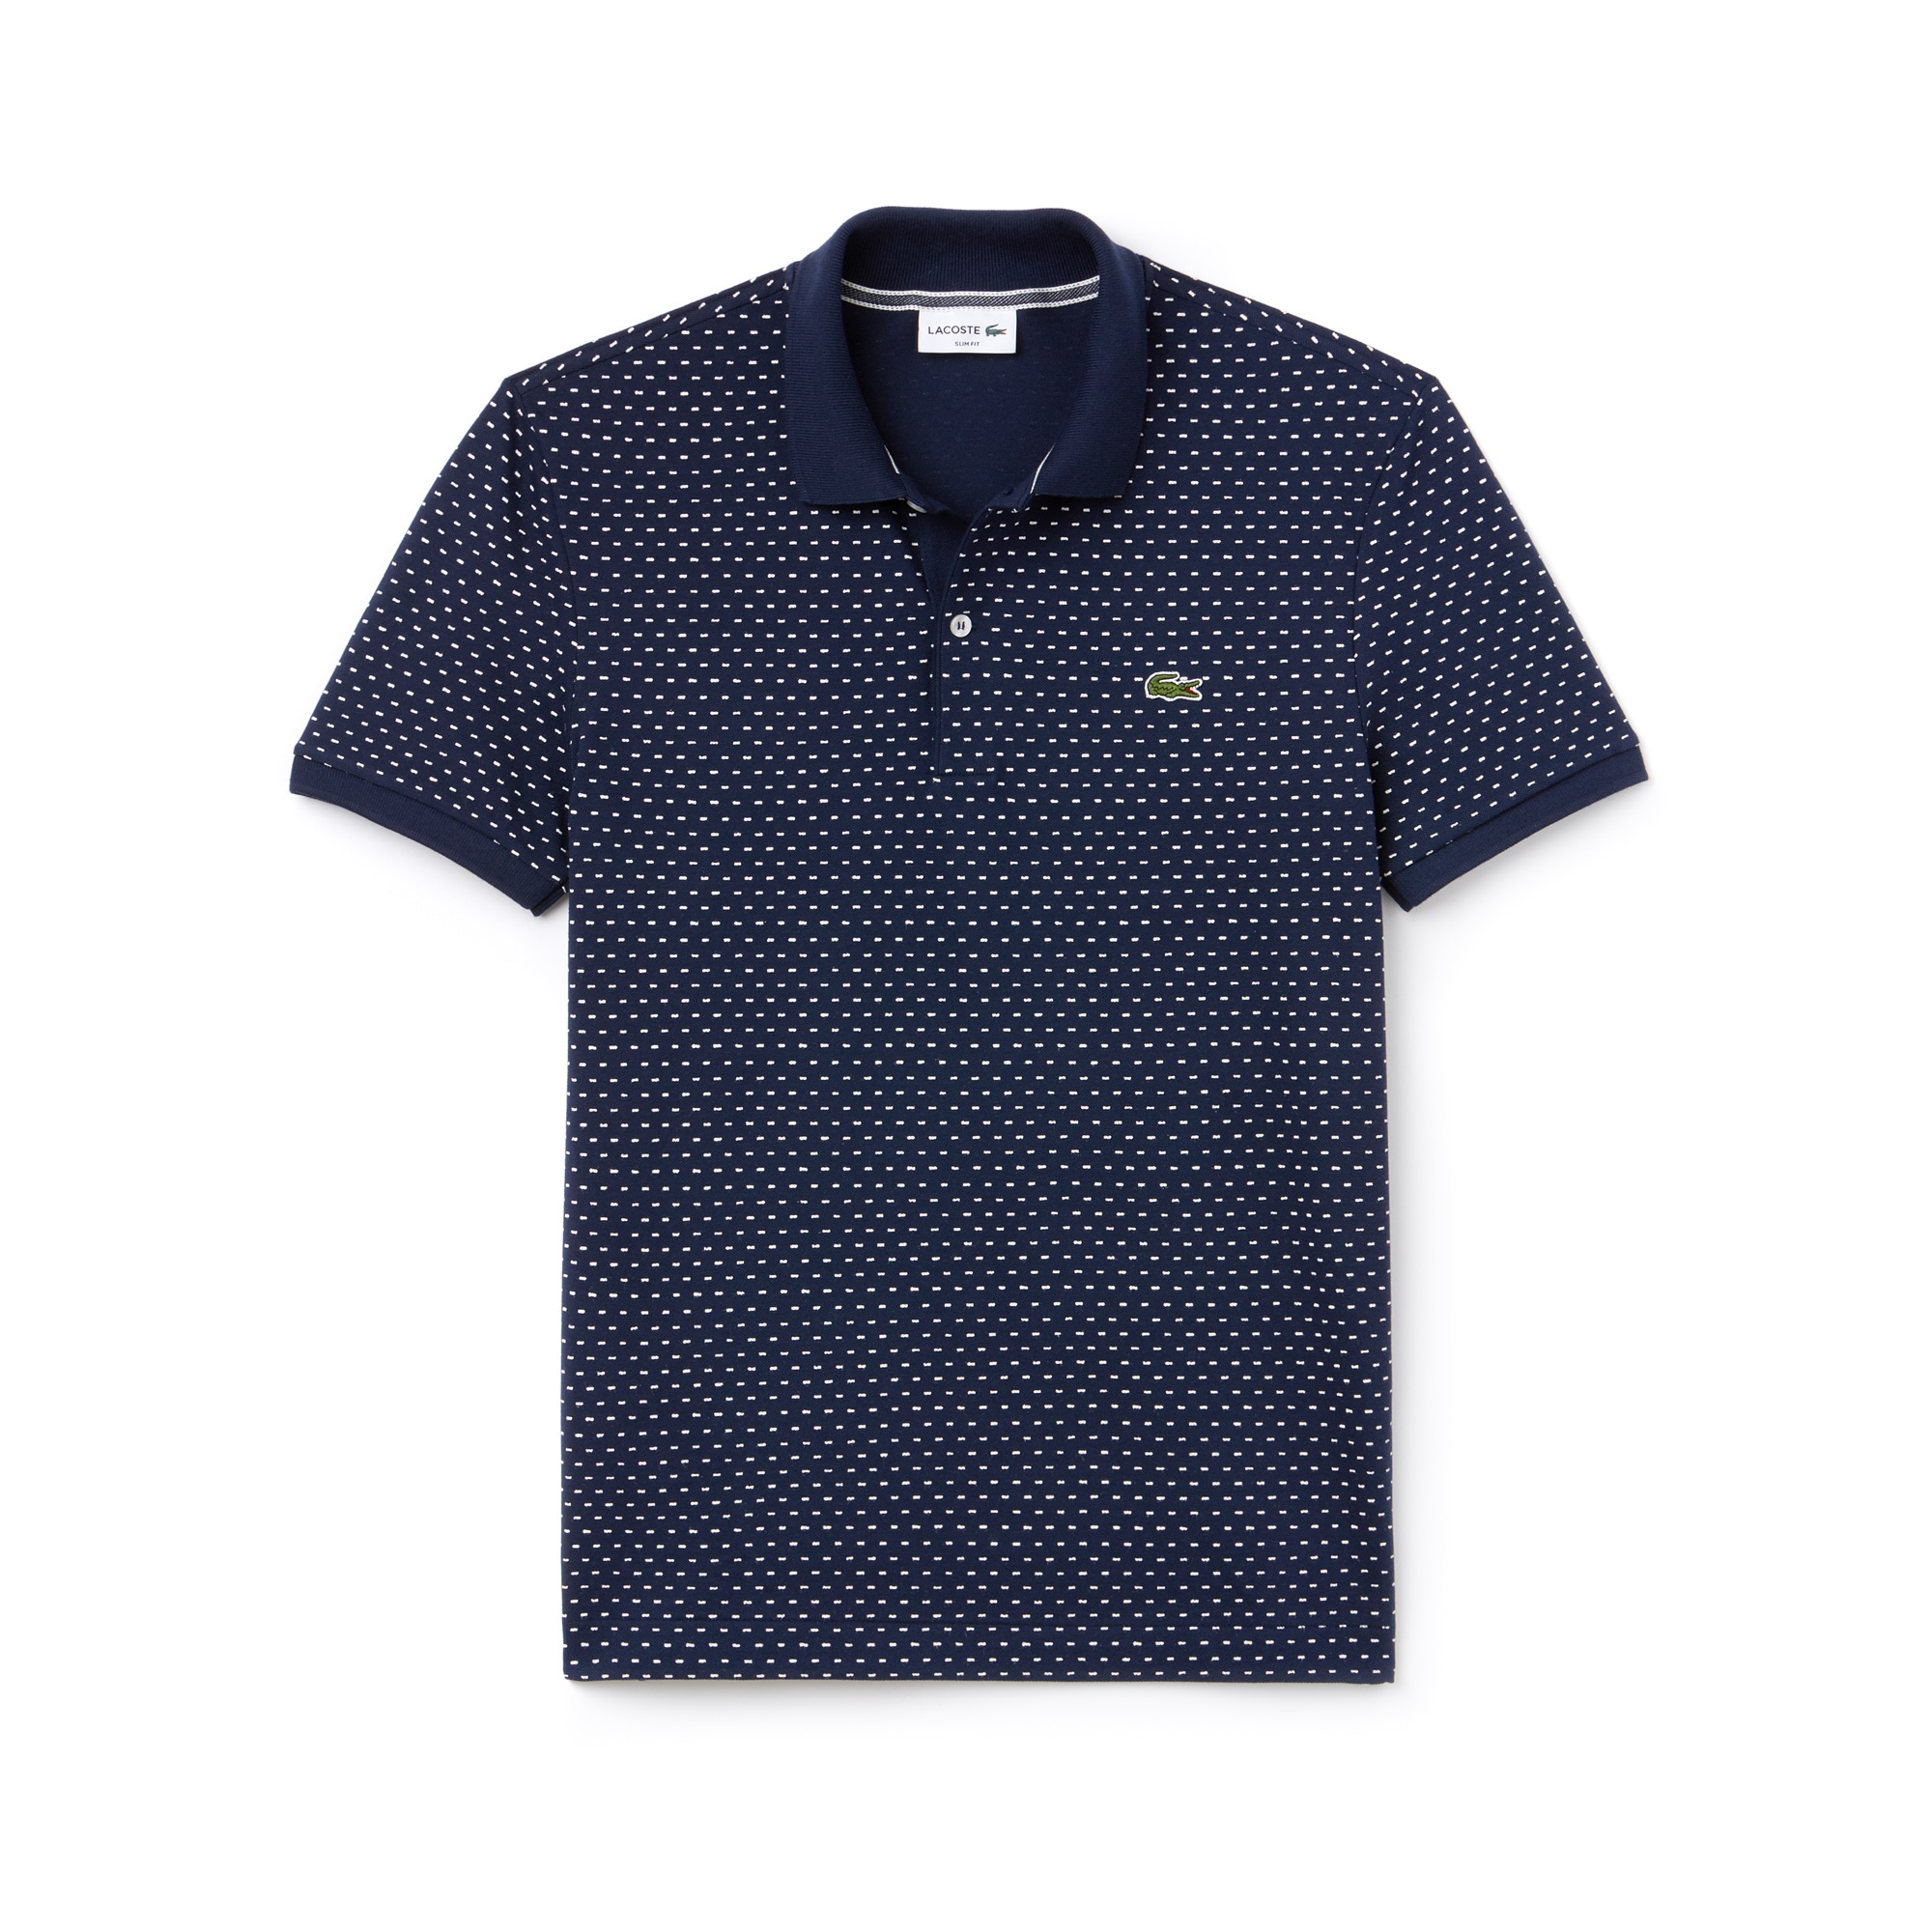 Polo slim fit Lacoste in mini piqué stampato